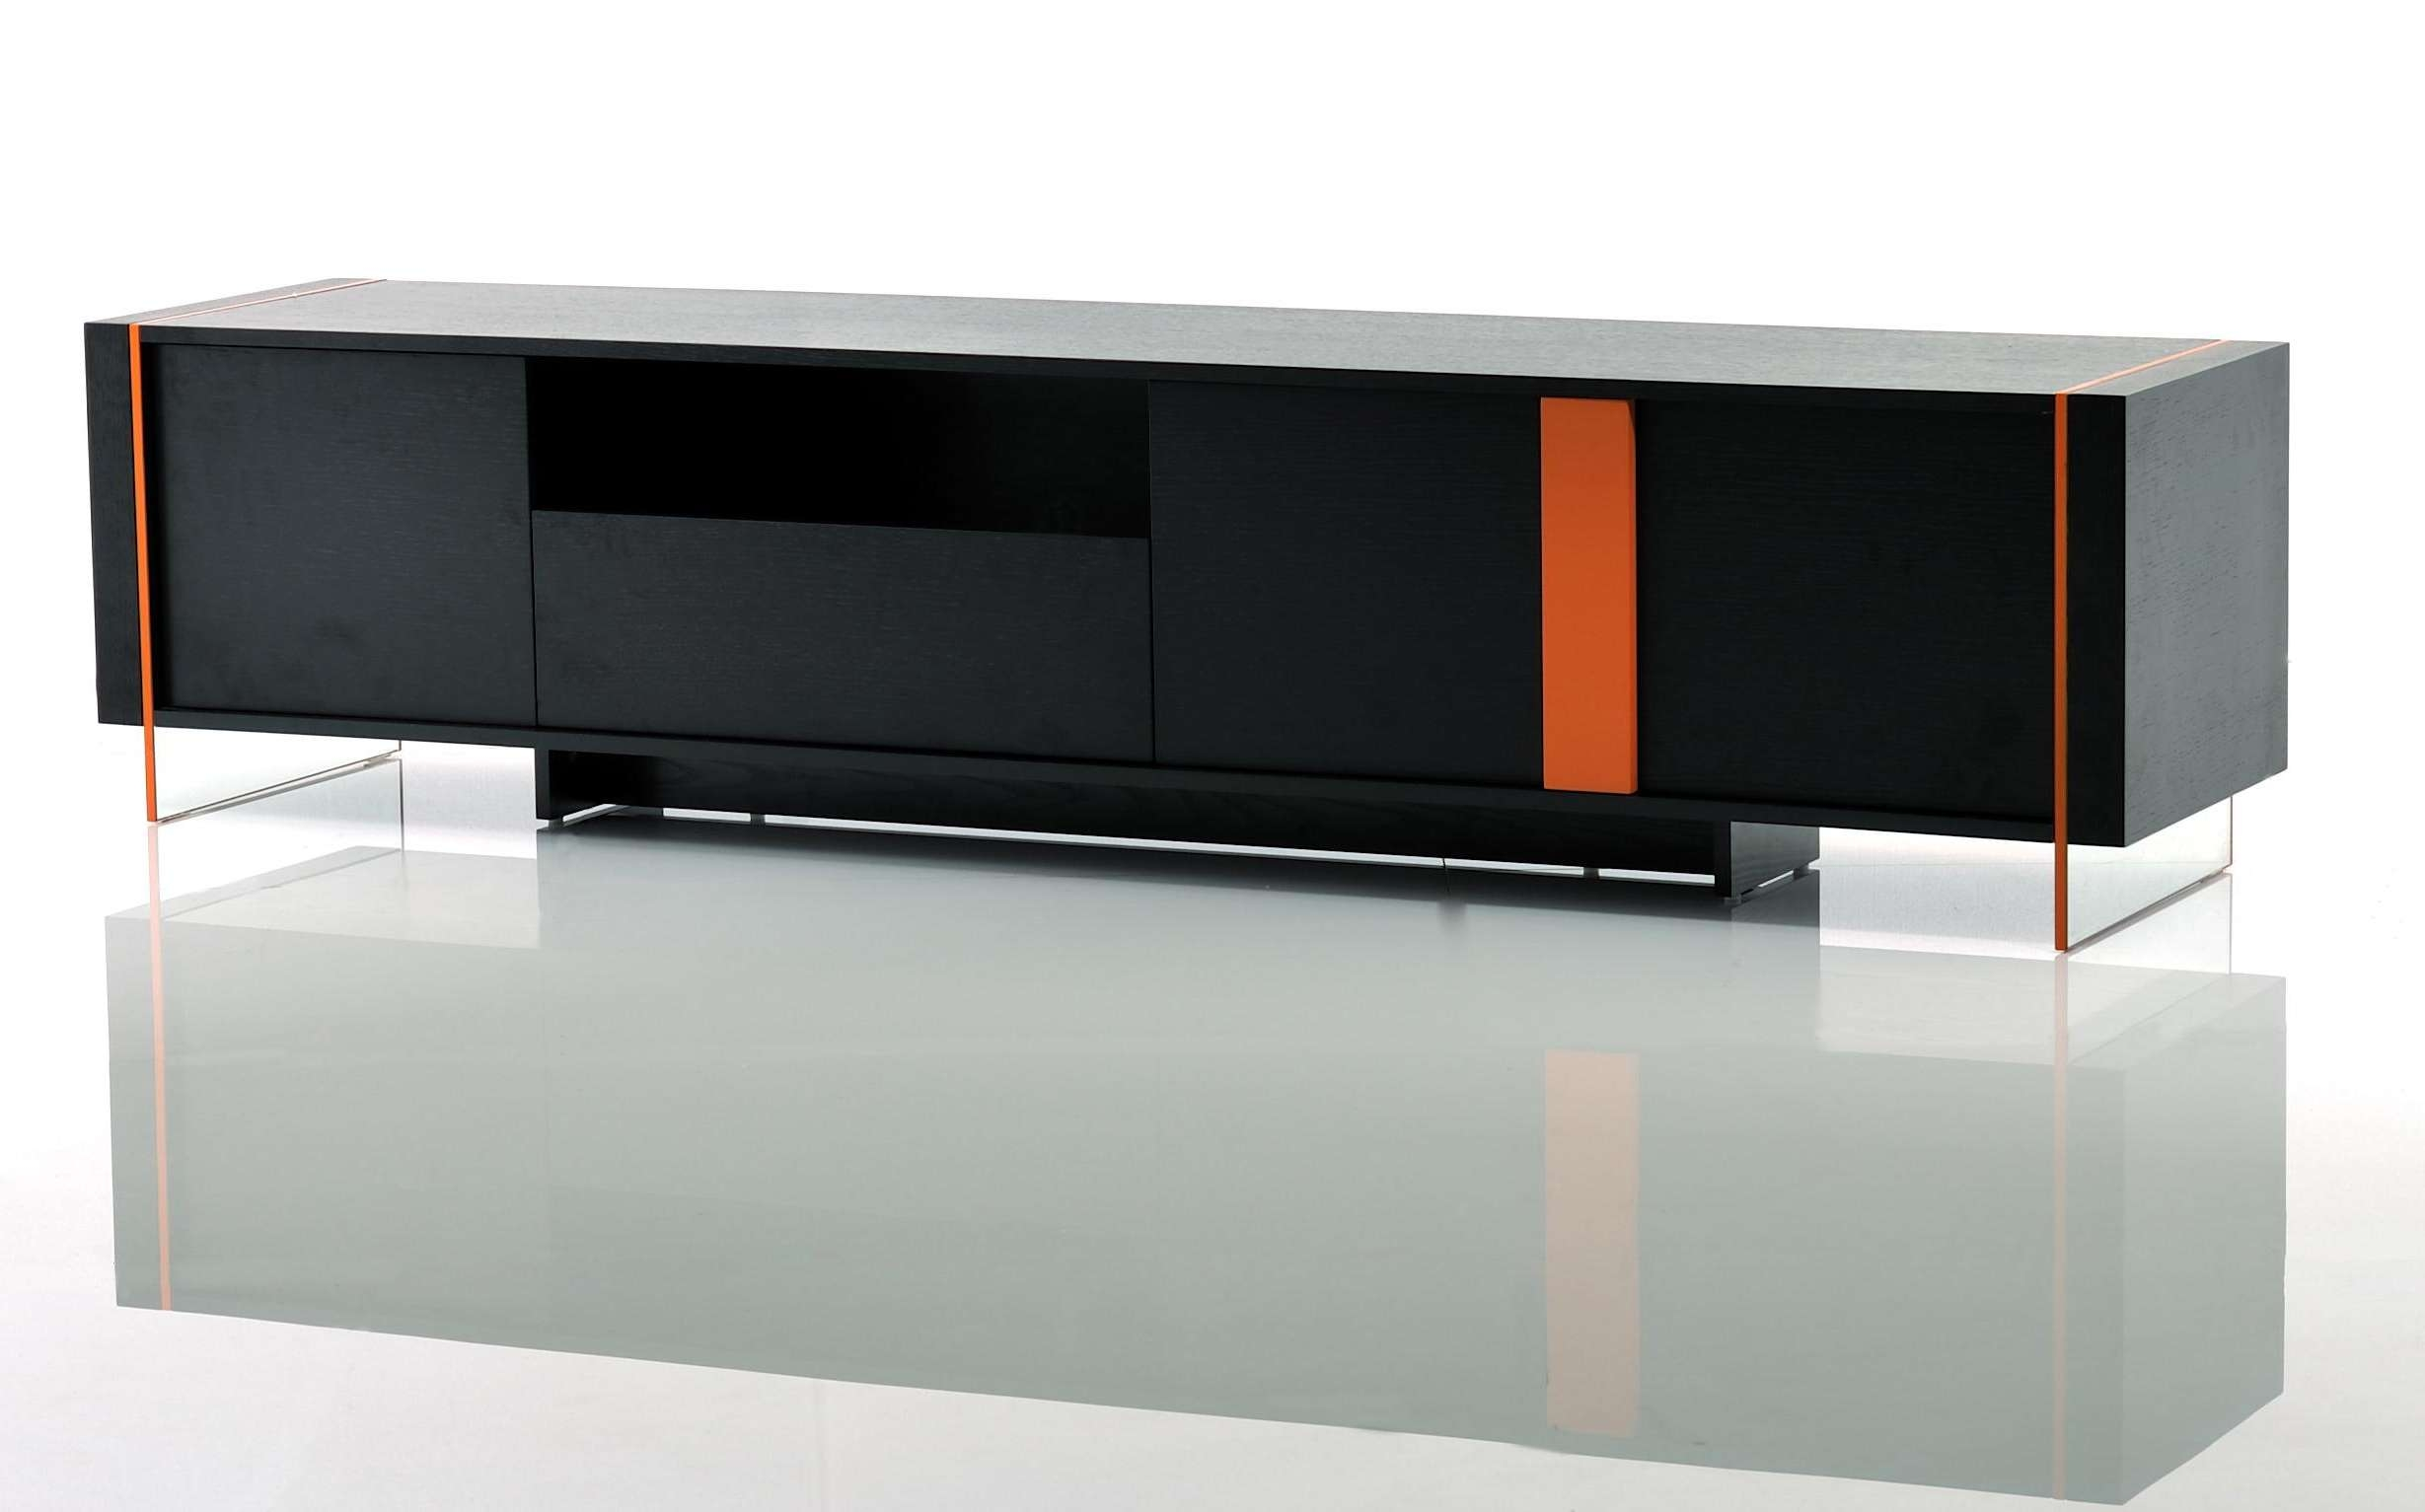 Contemporary Black Oak And Orange Floating Tv Stand Austin Texas Vvis With Regard To Orange Tv Stands (View 2 of 15)